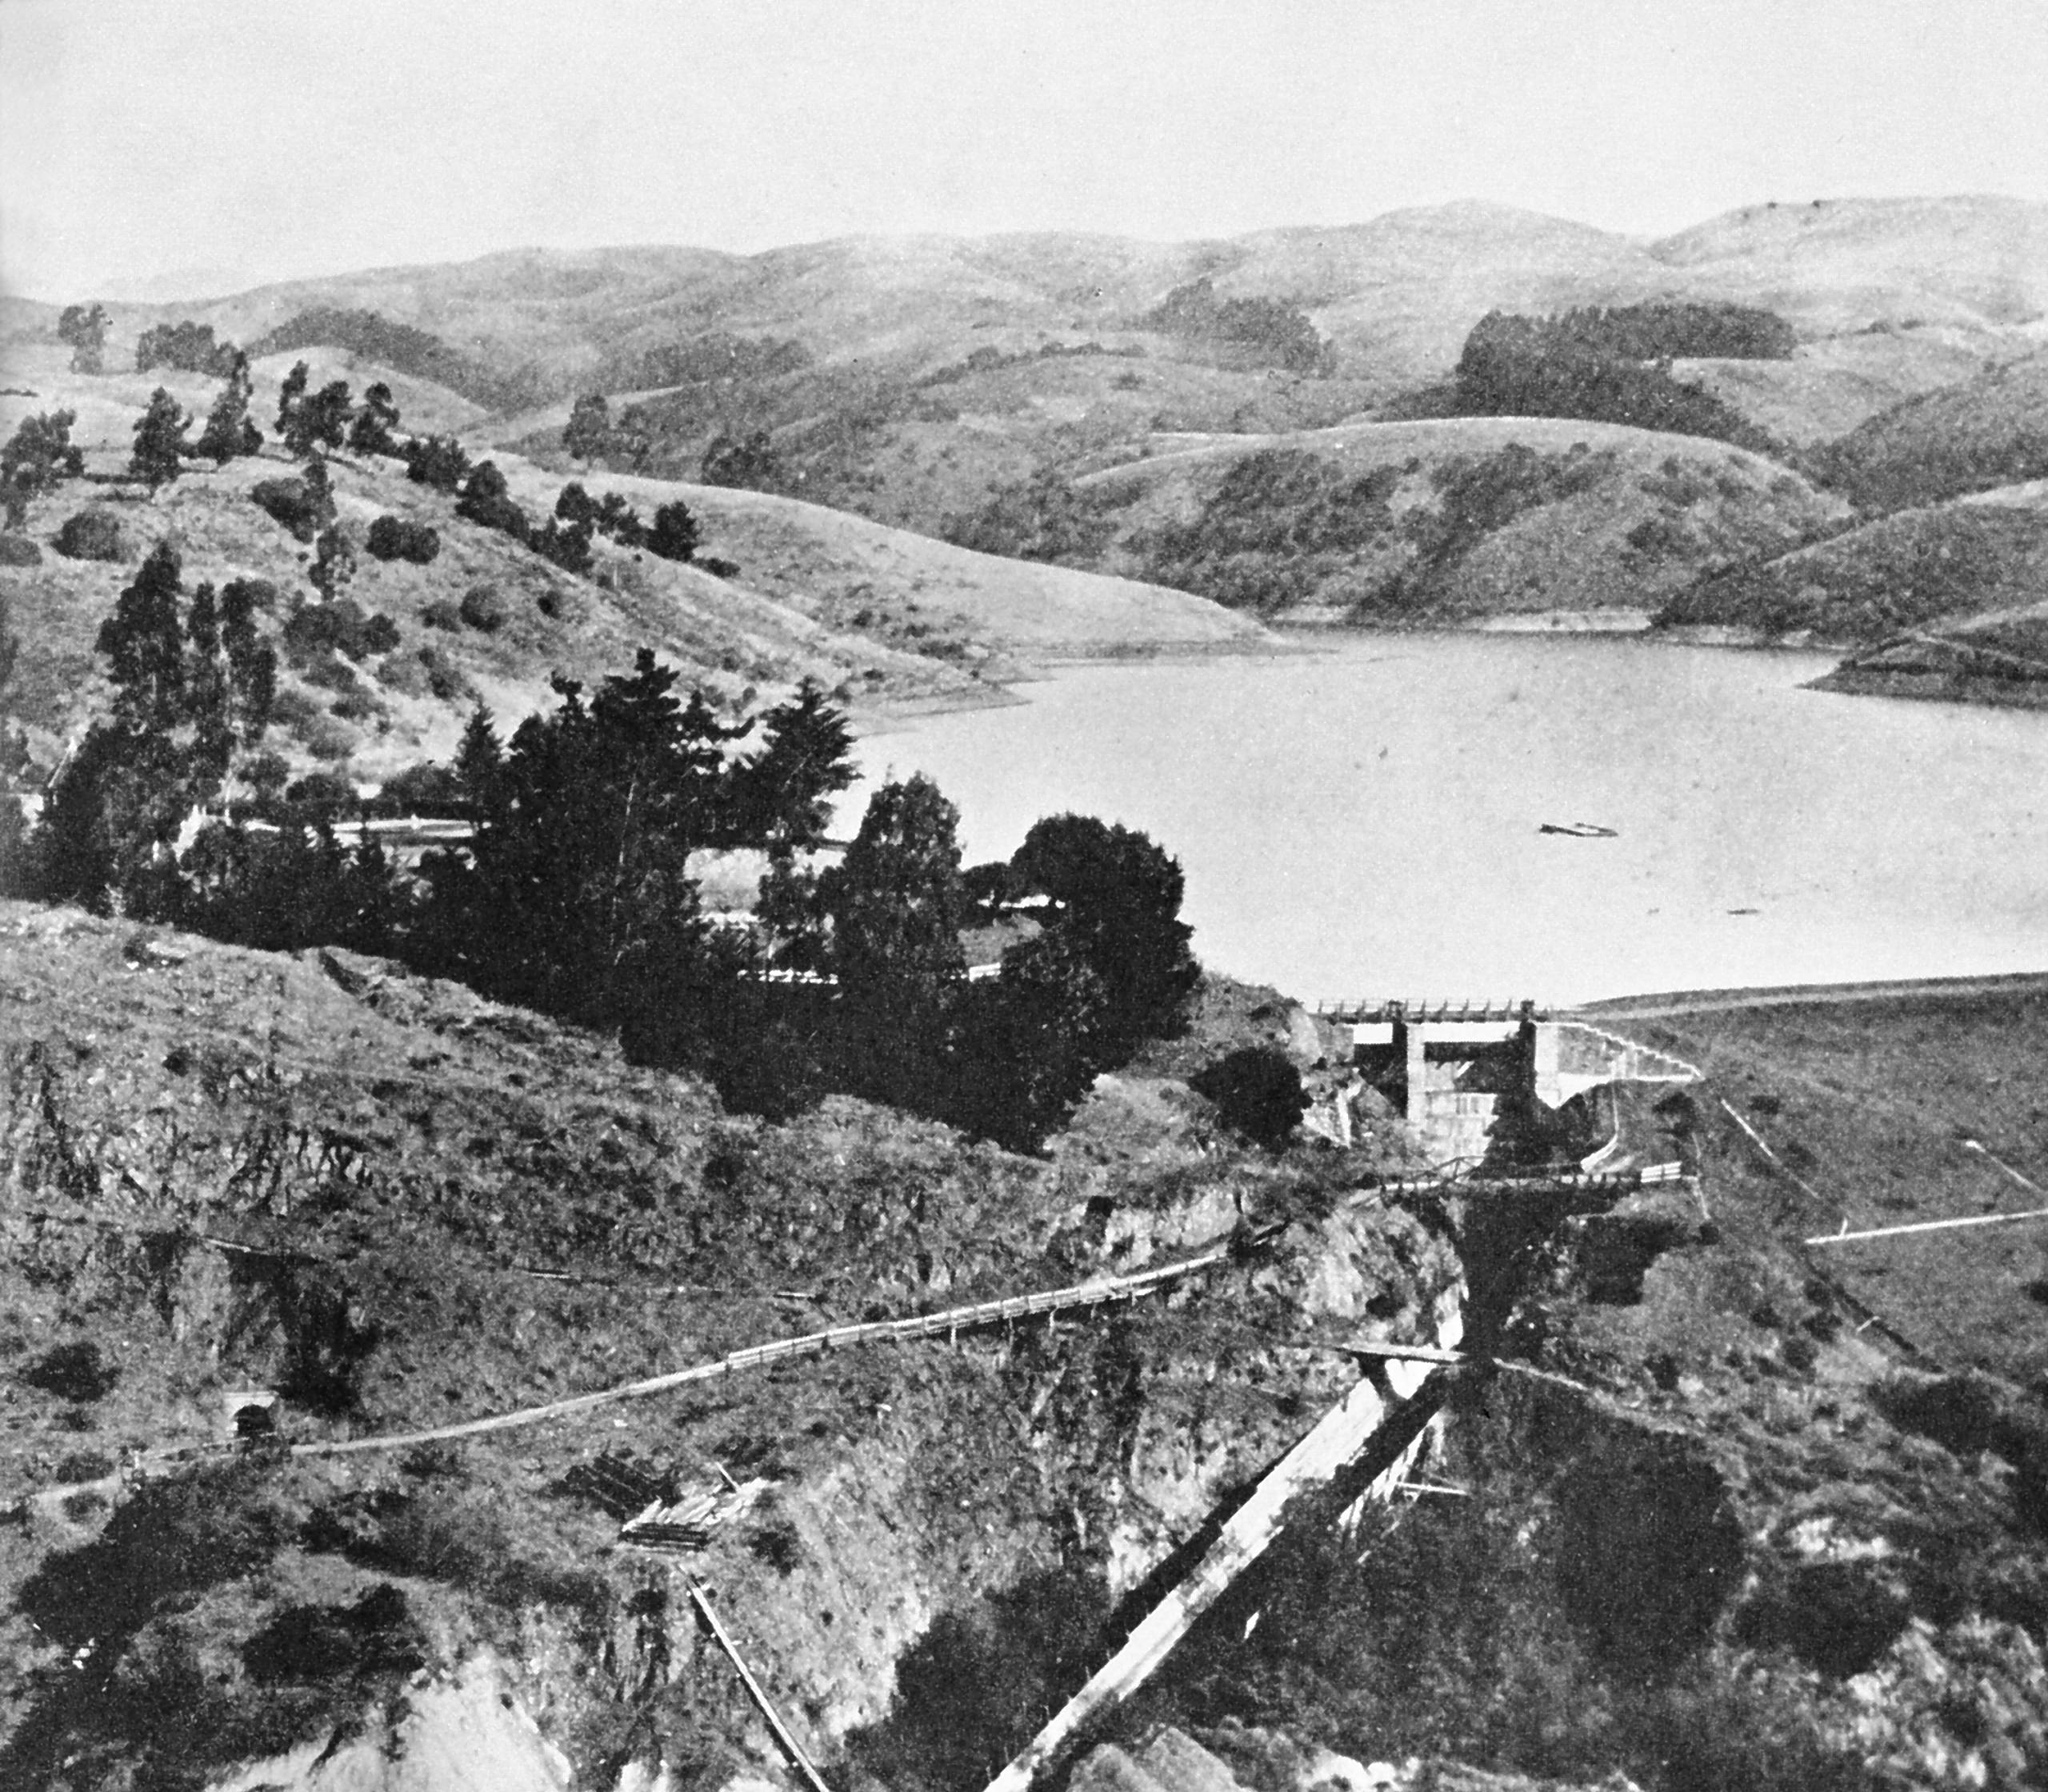 A black and white photo of lake chabot nestled below rolling hills.